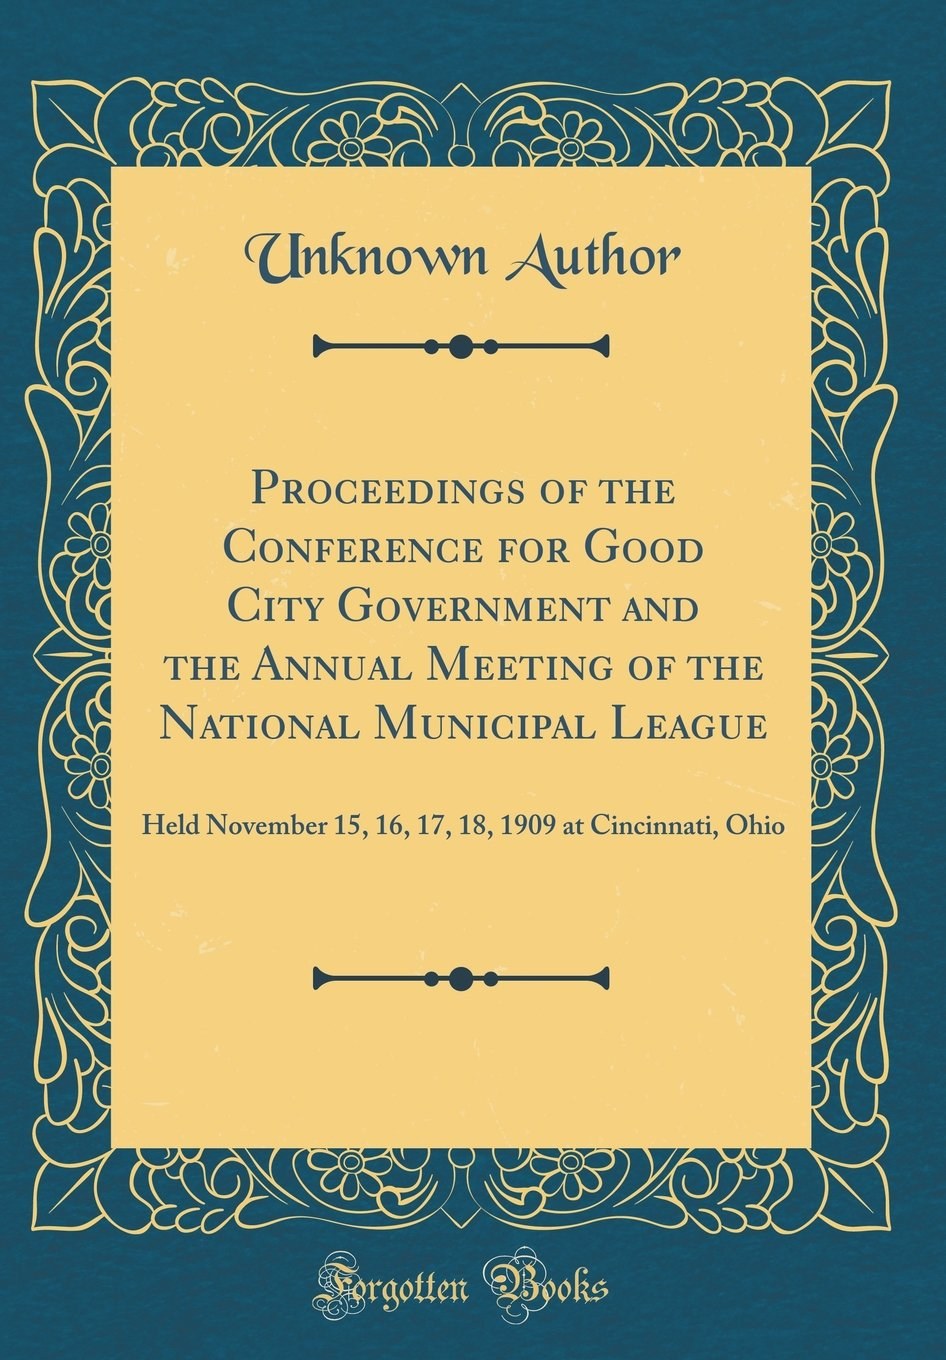 Download Proceedings of the Conference for Good City Government and the Annual Meeting of the National Municipal League: Held November 15, 16, 17, 18, 1909 at Cincinnati, Ohio (Classic Reprint) pdf epub